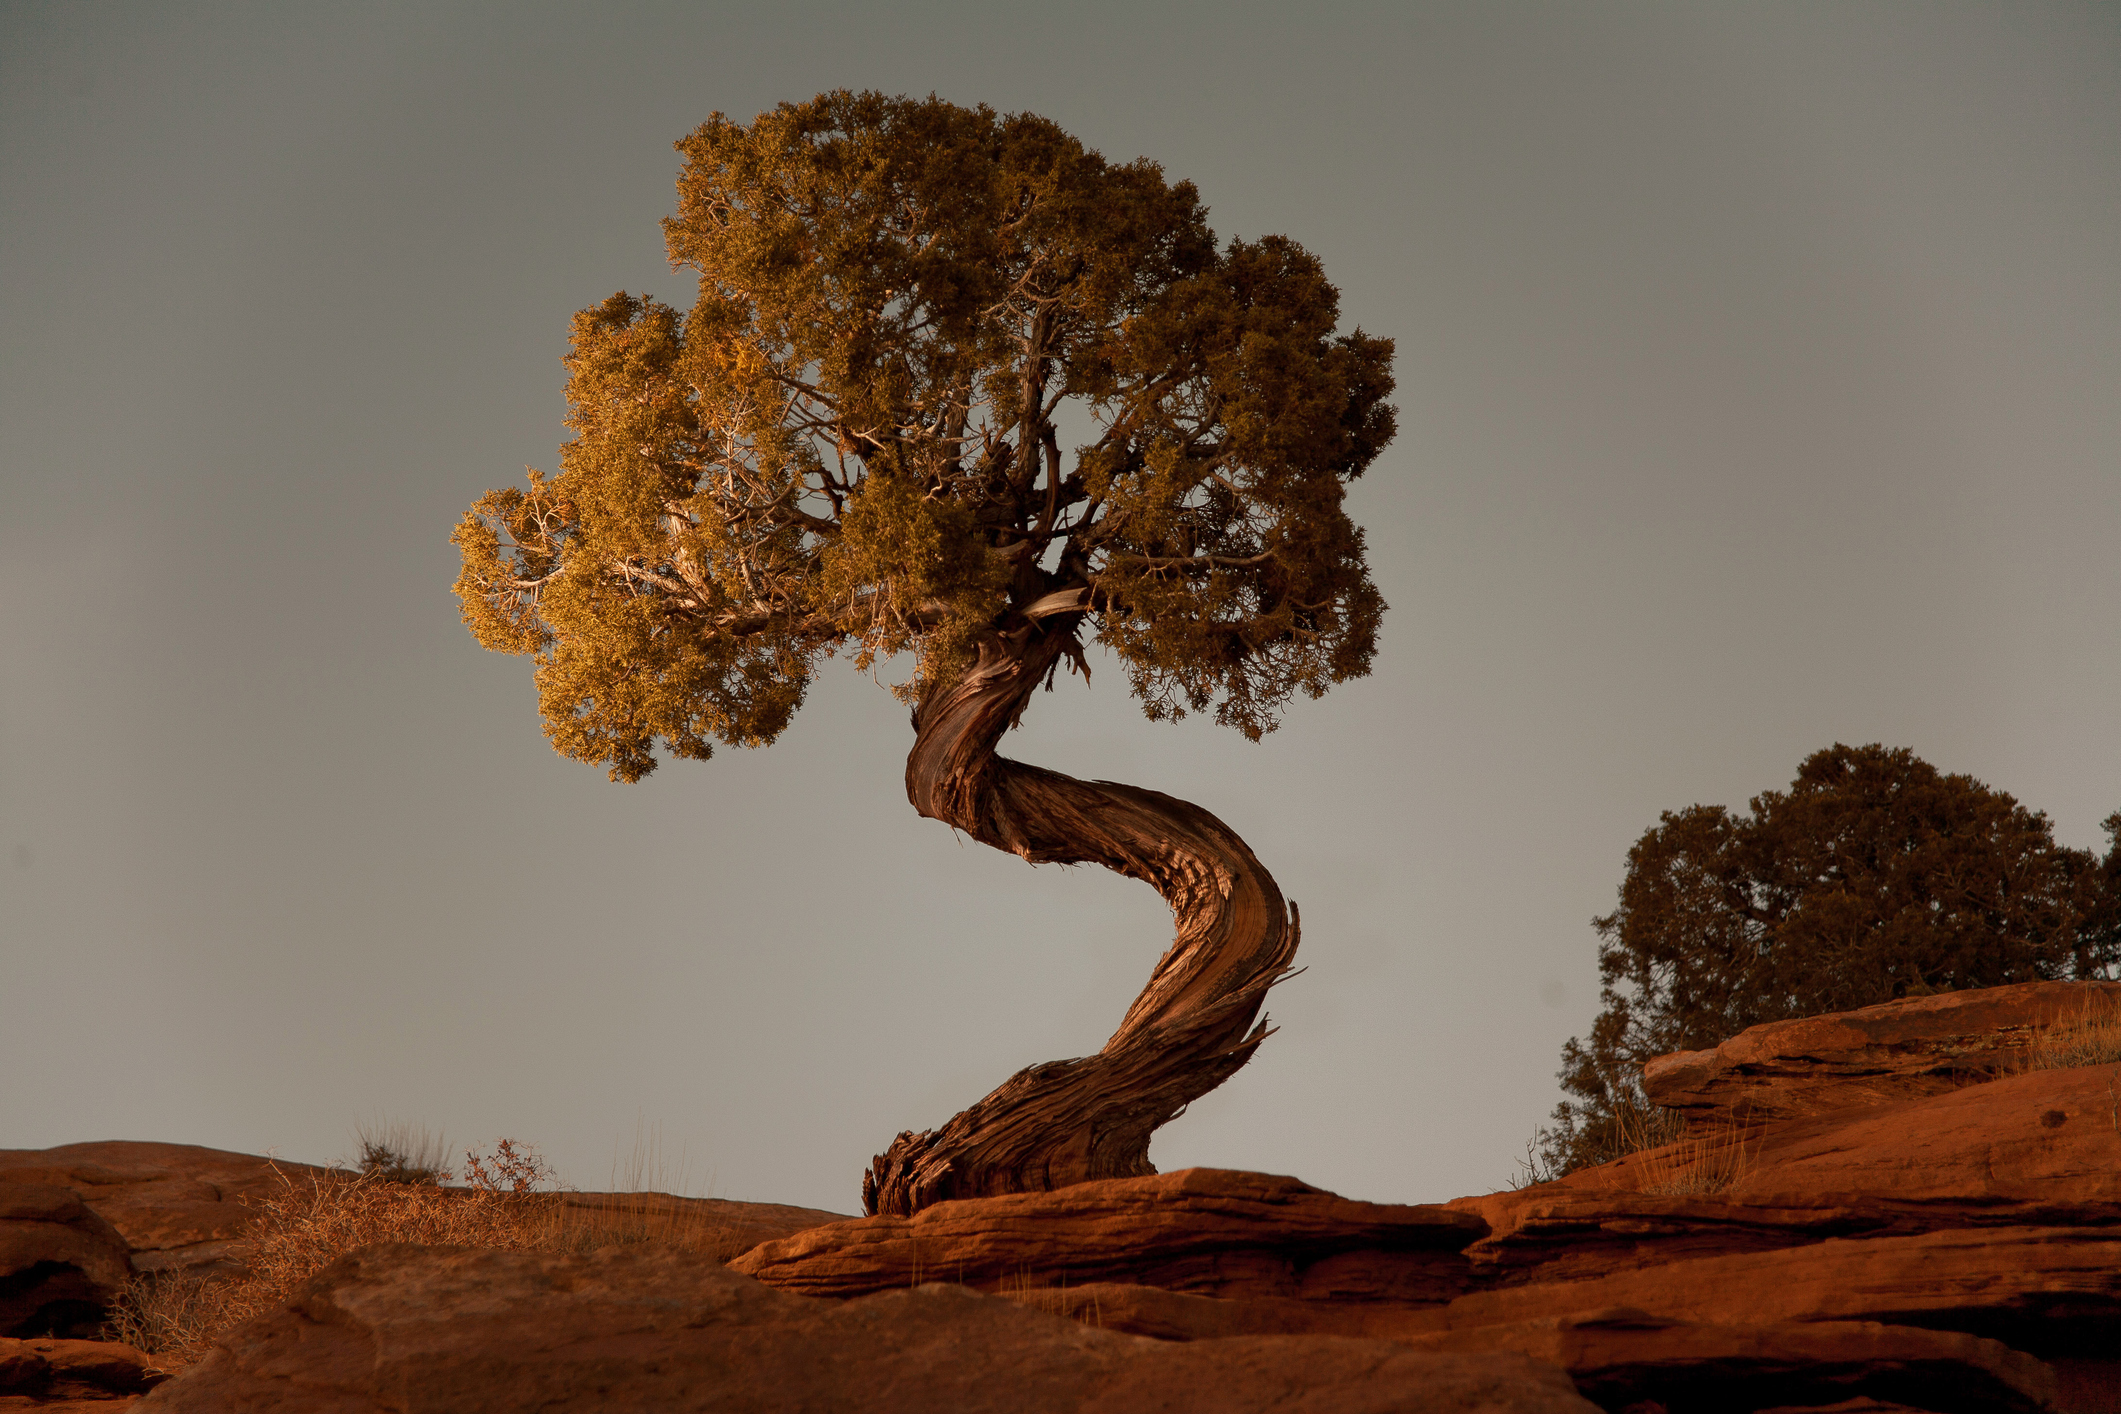 Stock Images. A spiral juniper tree at Deadhorse Point State Park near Moab, Utah